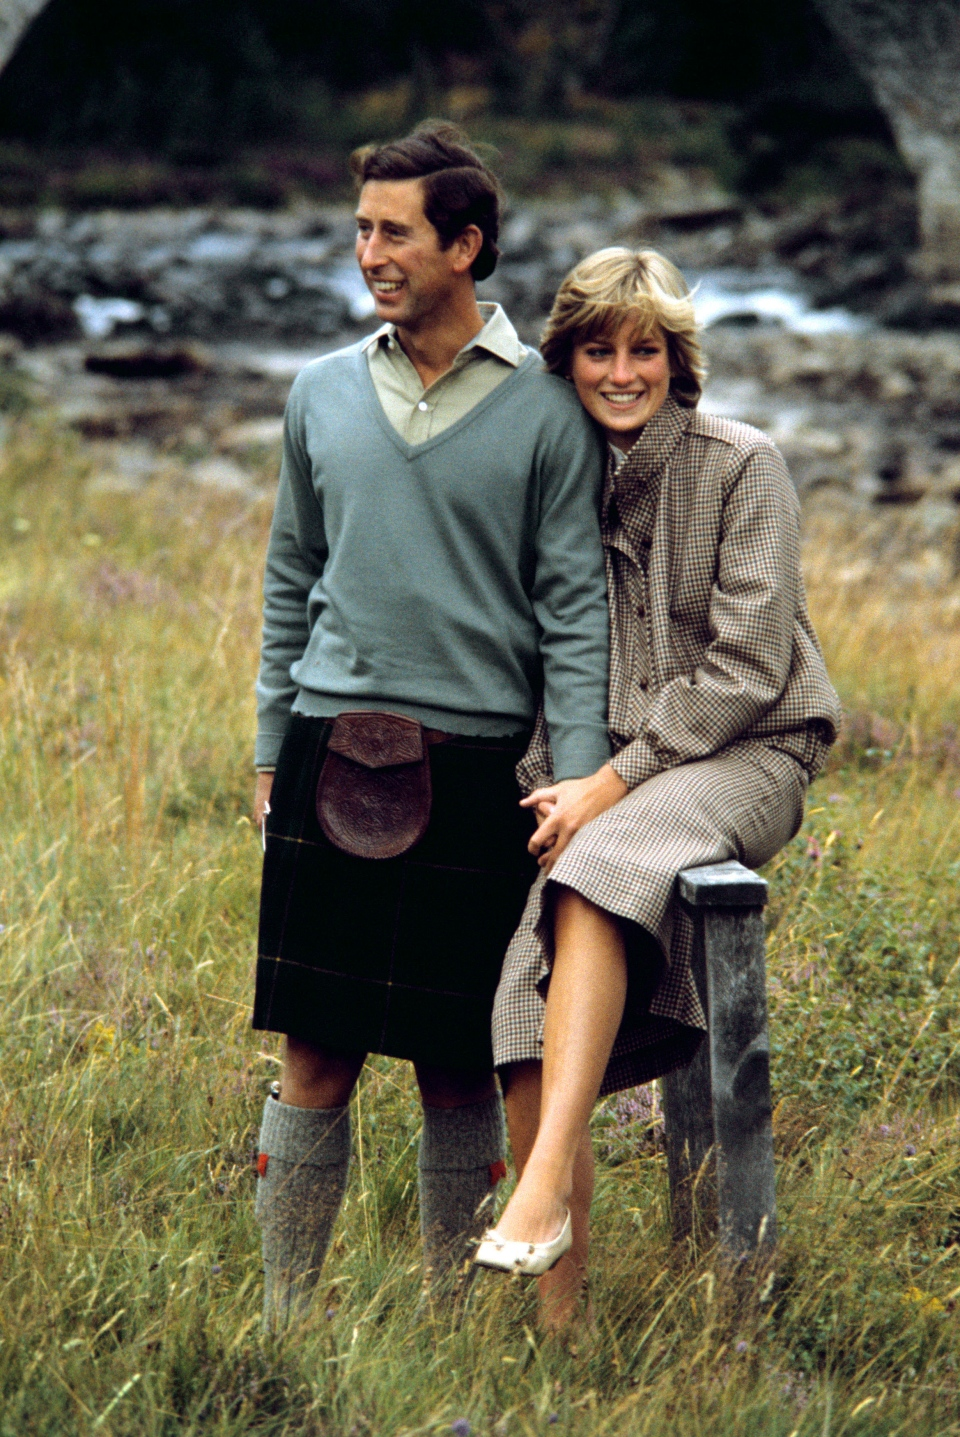 FILE - In this Aug. 19, 1981 file photo, Britain's Prince Charles and Diana, Princess of Wales pose for photographers during their honeymoon in Balmoral, Scotland. (PA via AP, file)